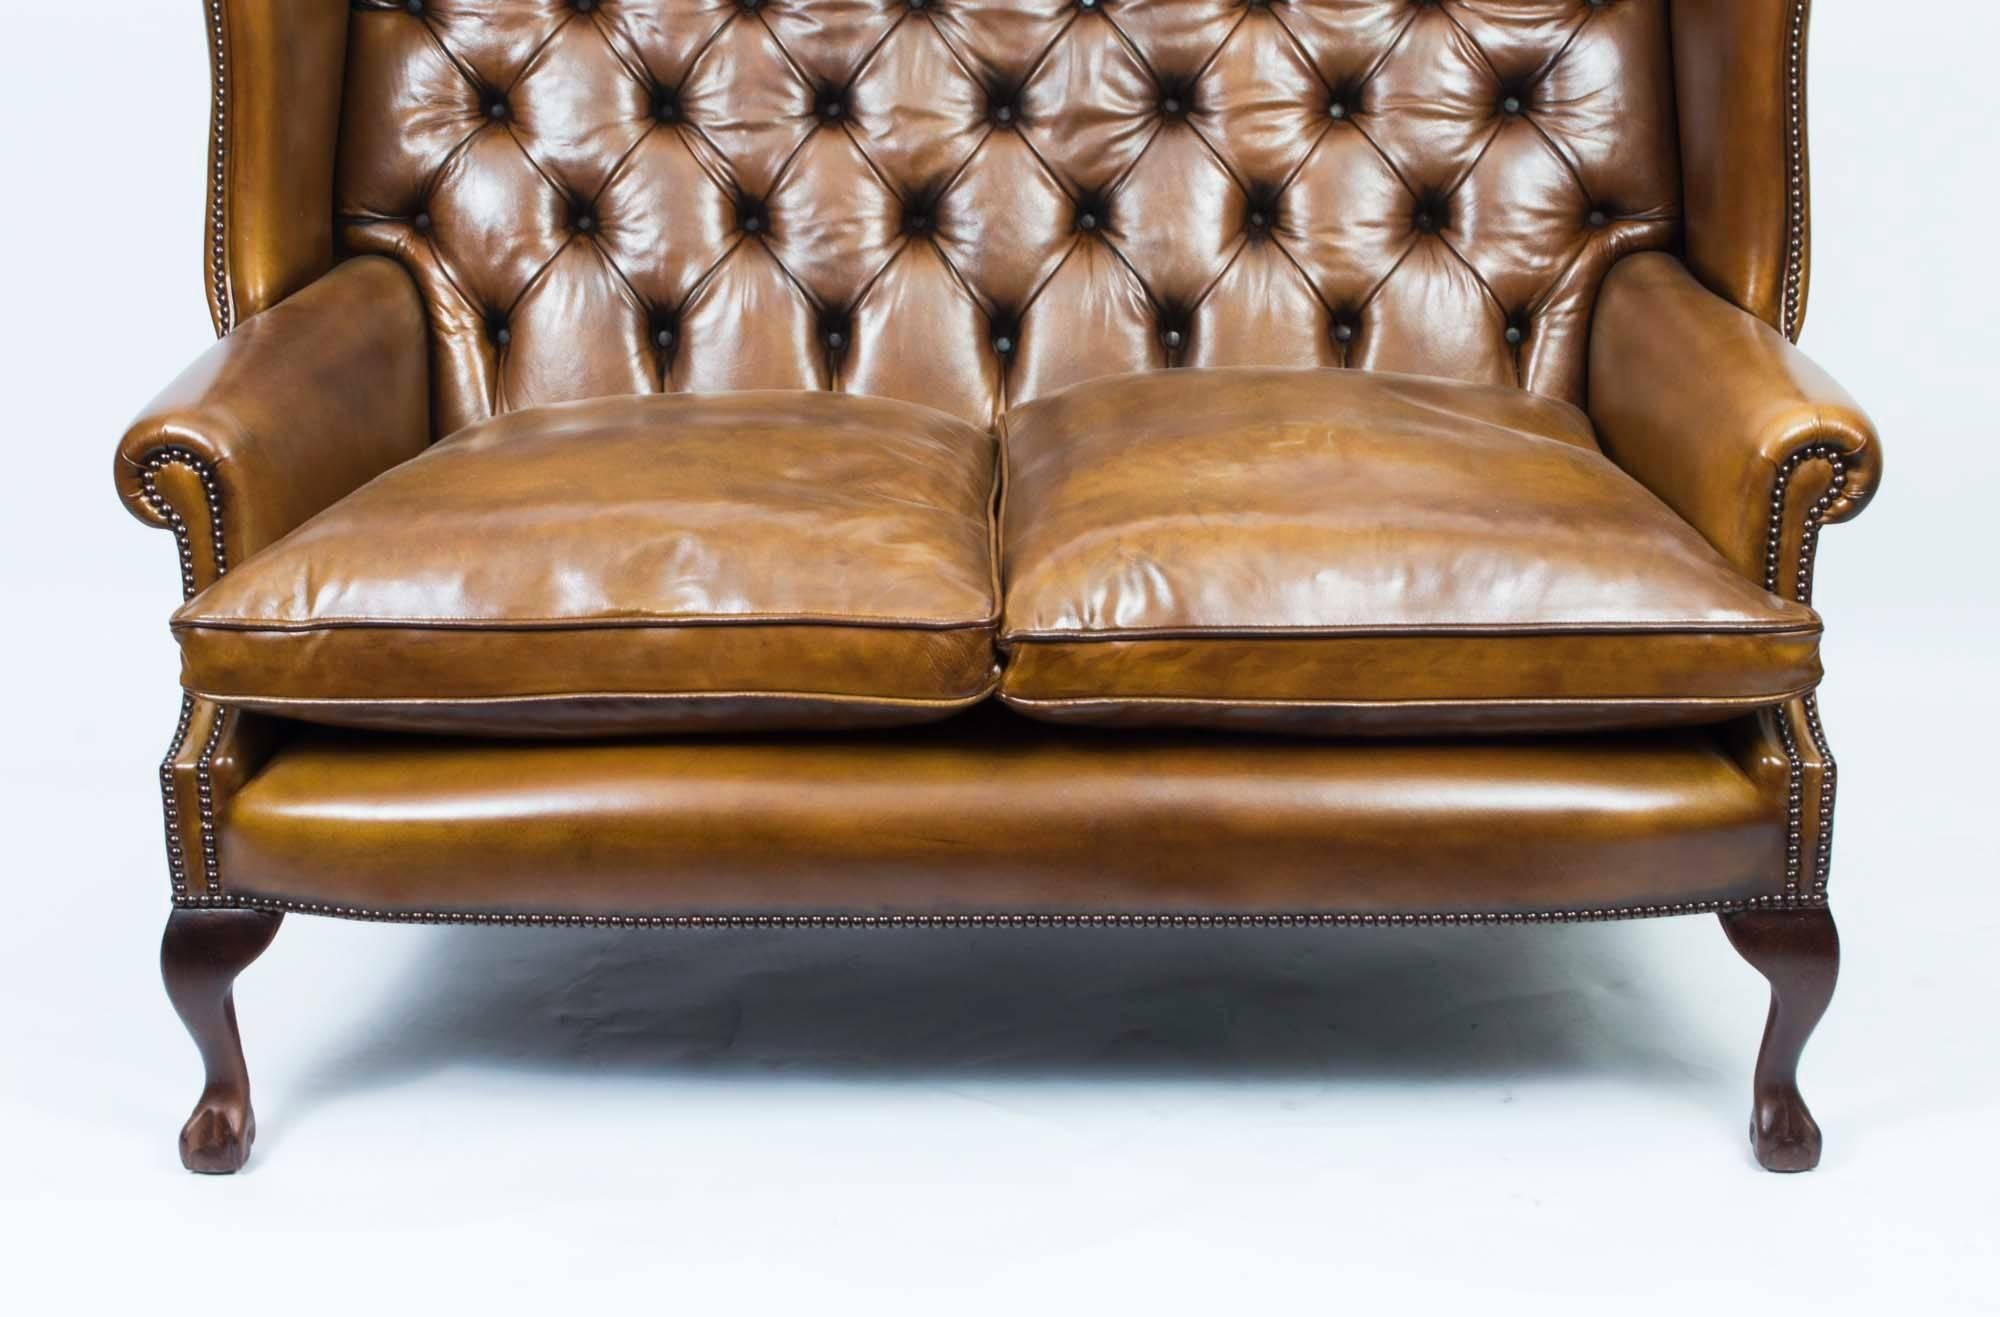 Sofa Cognacfarben Bespoke English Leather Chippendale Club Settee Sofa In Cognac